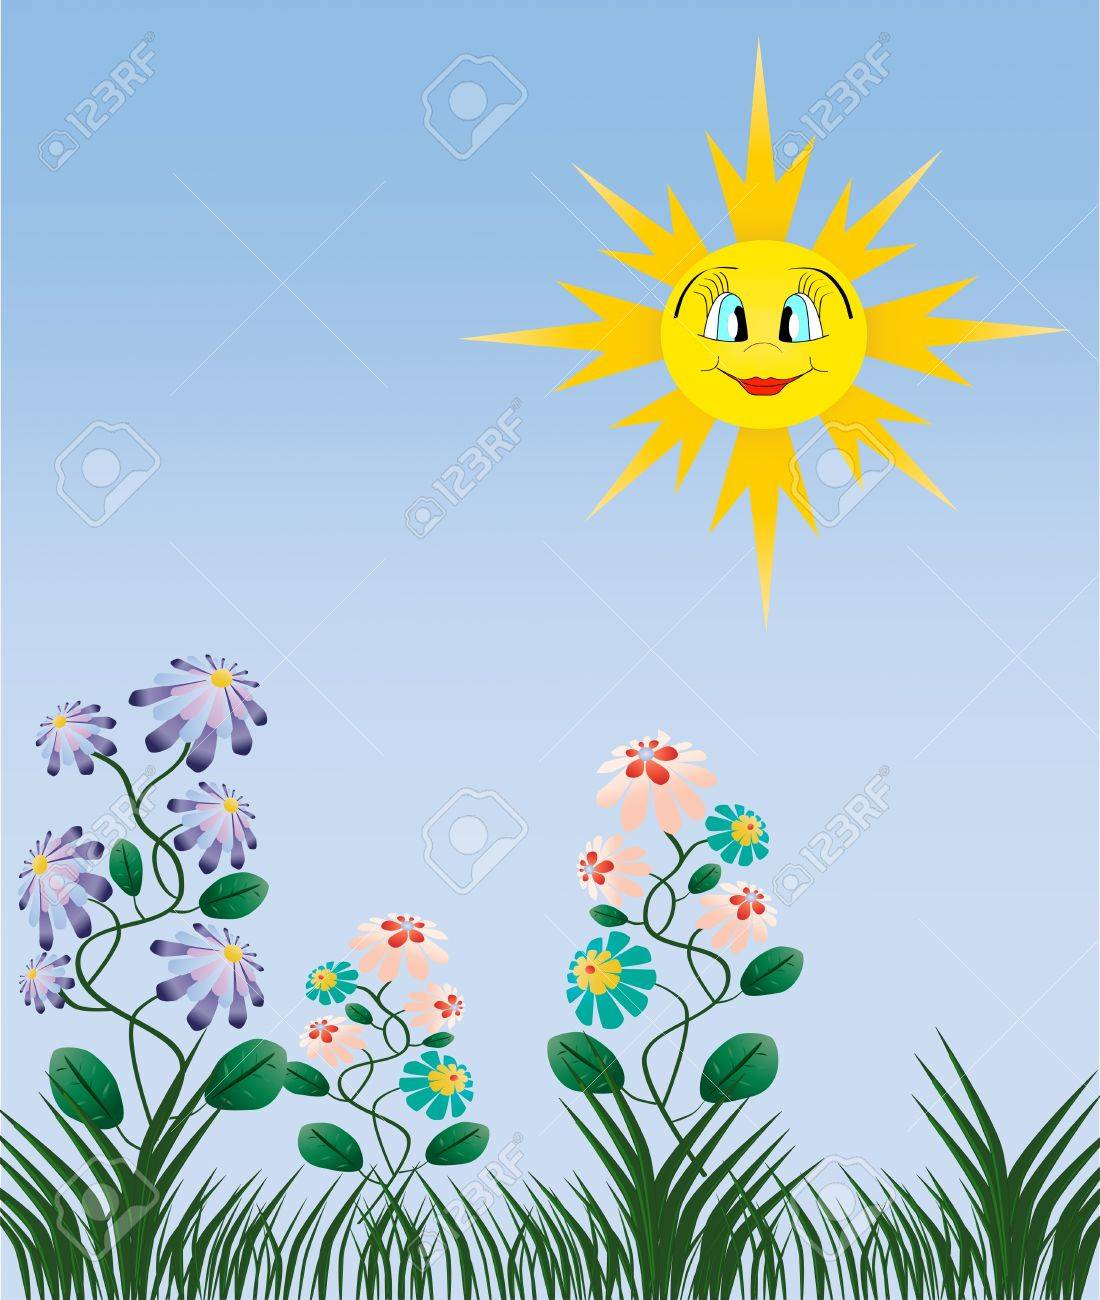 Beautiful nature illustration Yellow happy sun green grass and flowers Stock Vector - 14376722